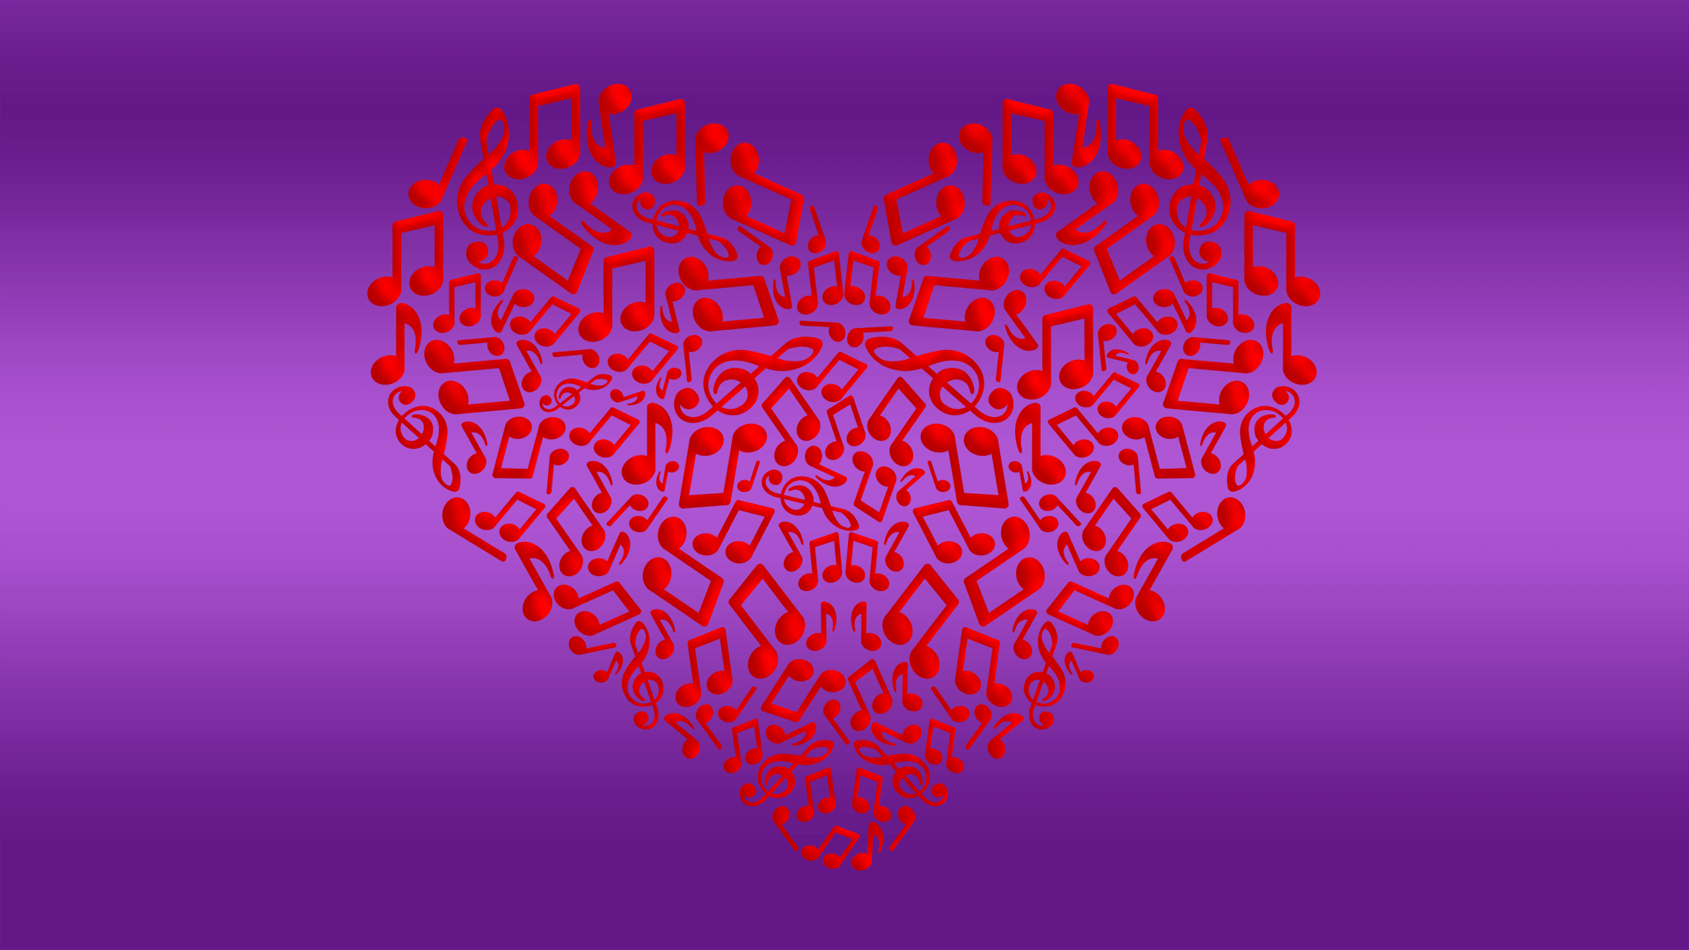 Heart filled with music notes